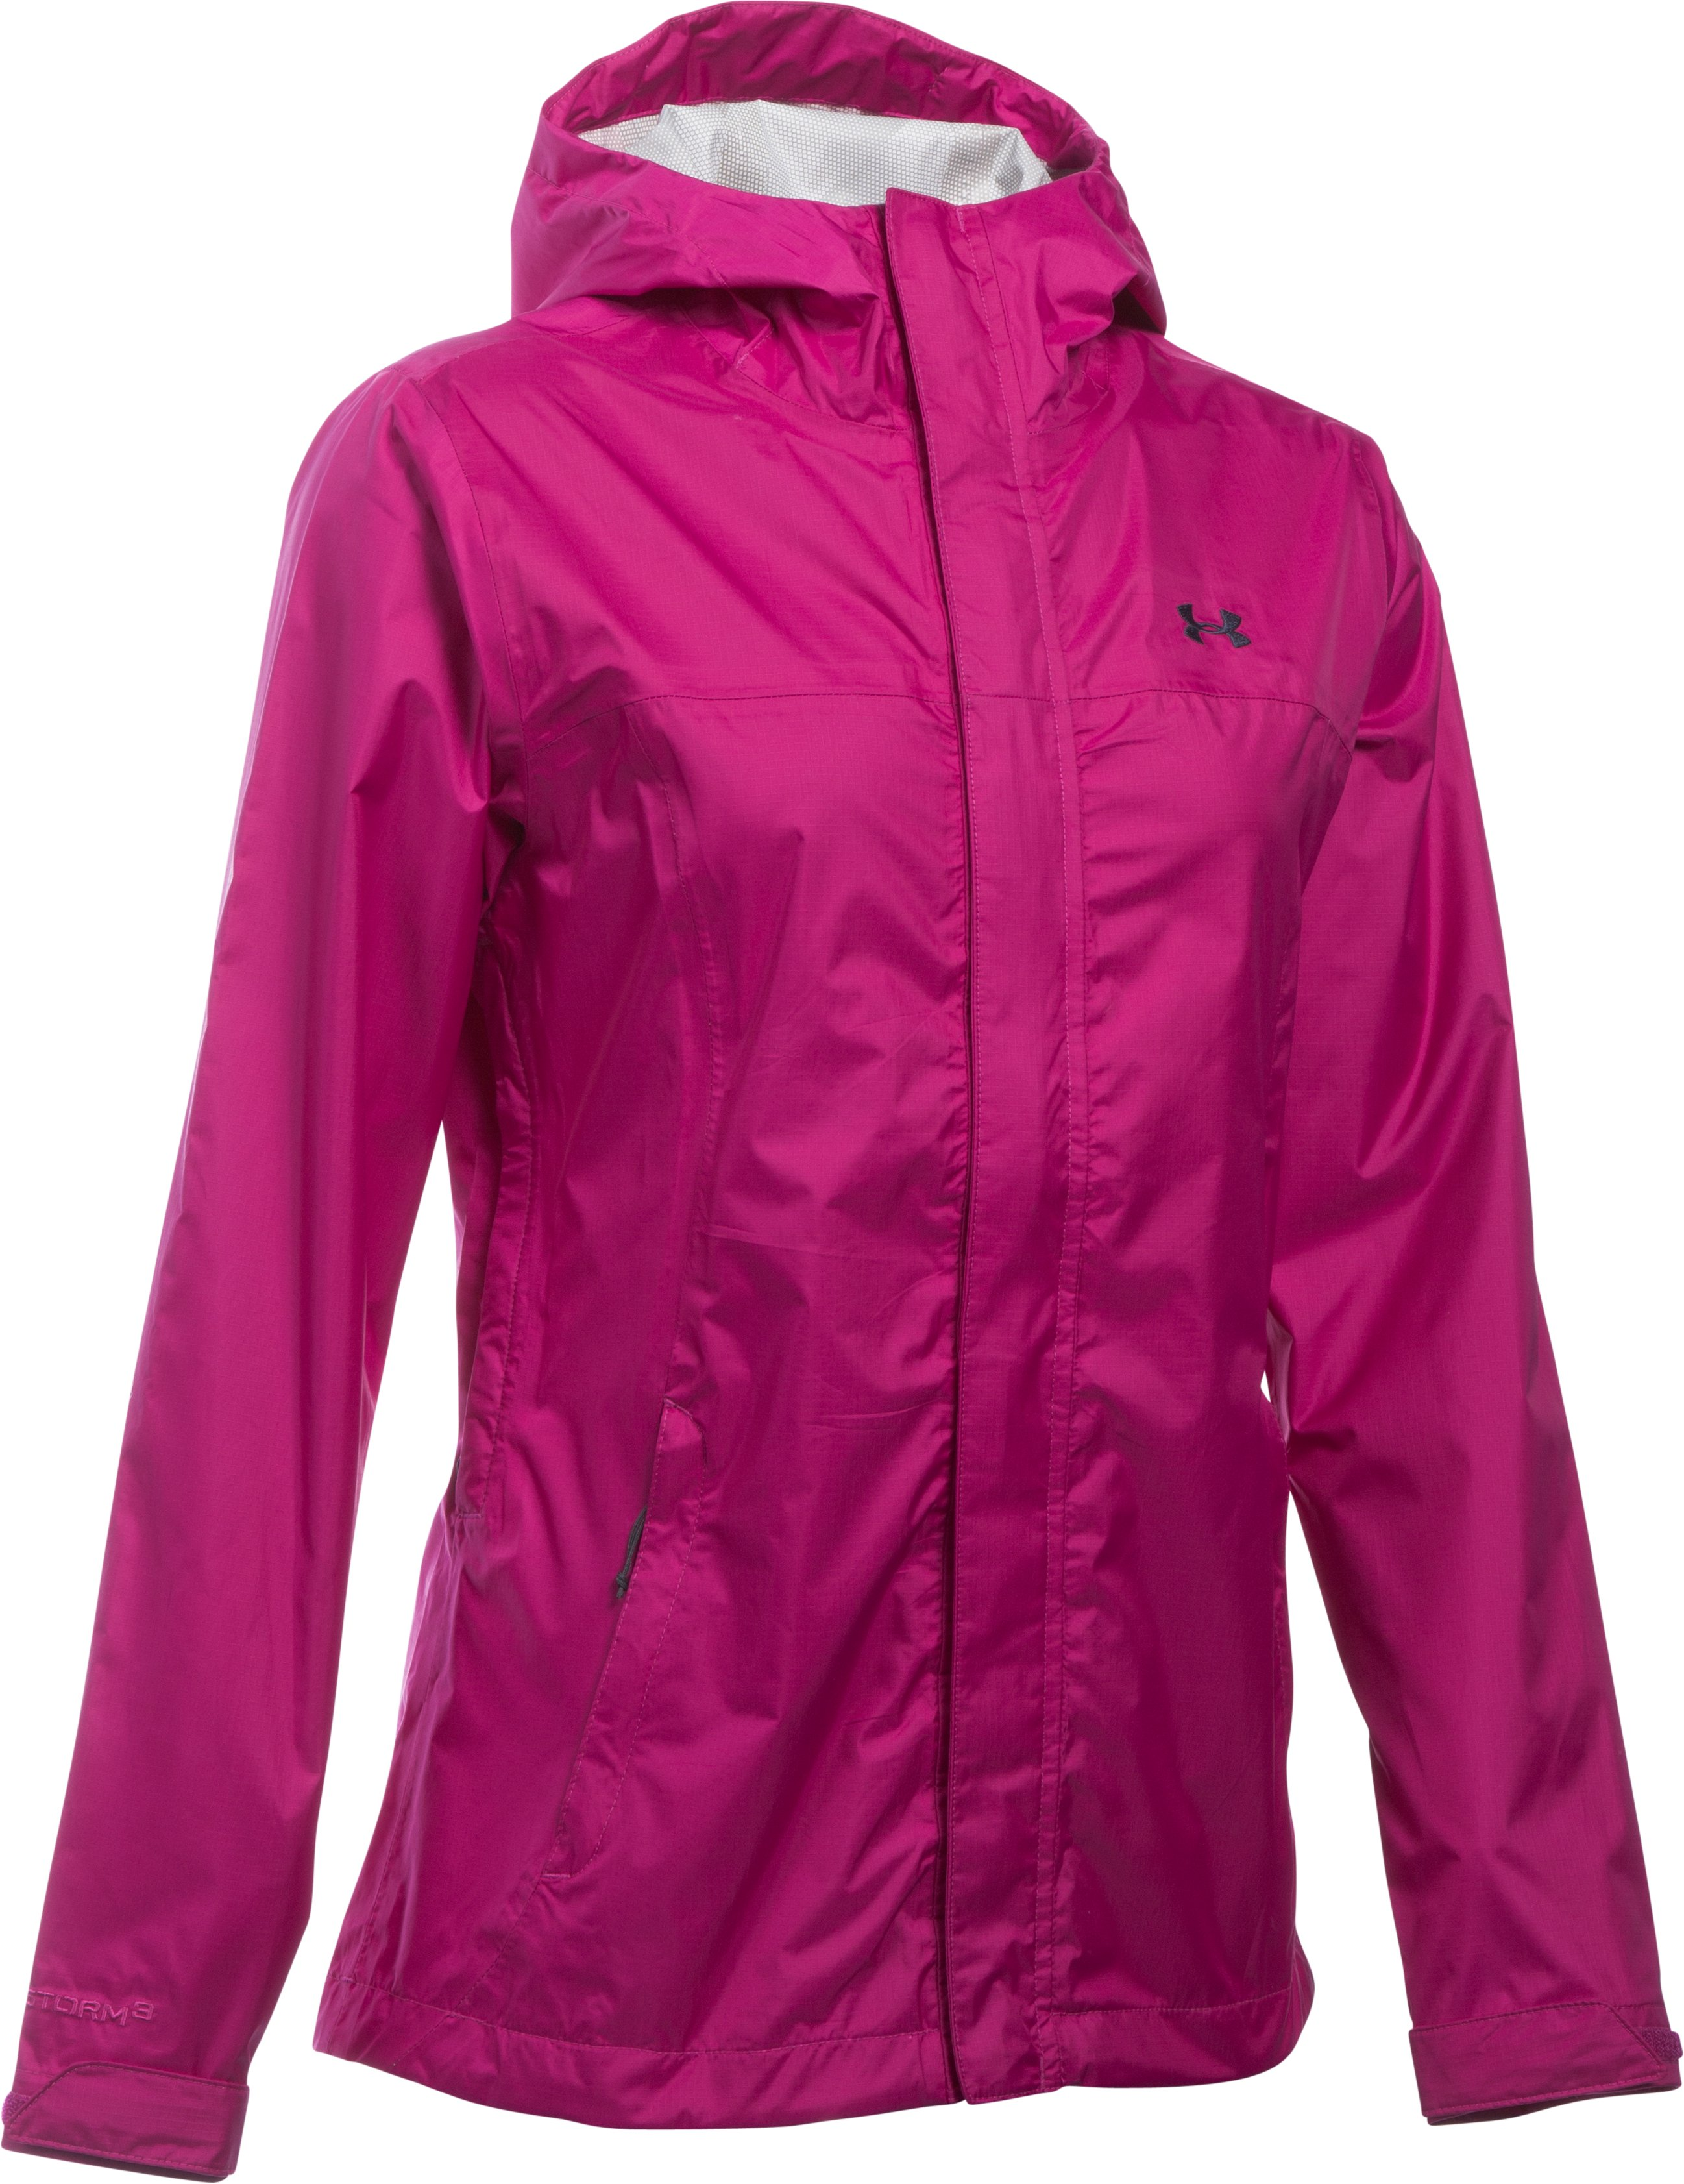 Women's UA Surge Jacket, MAGENTA SHOCK